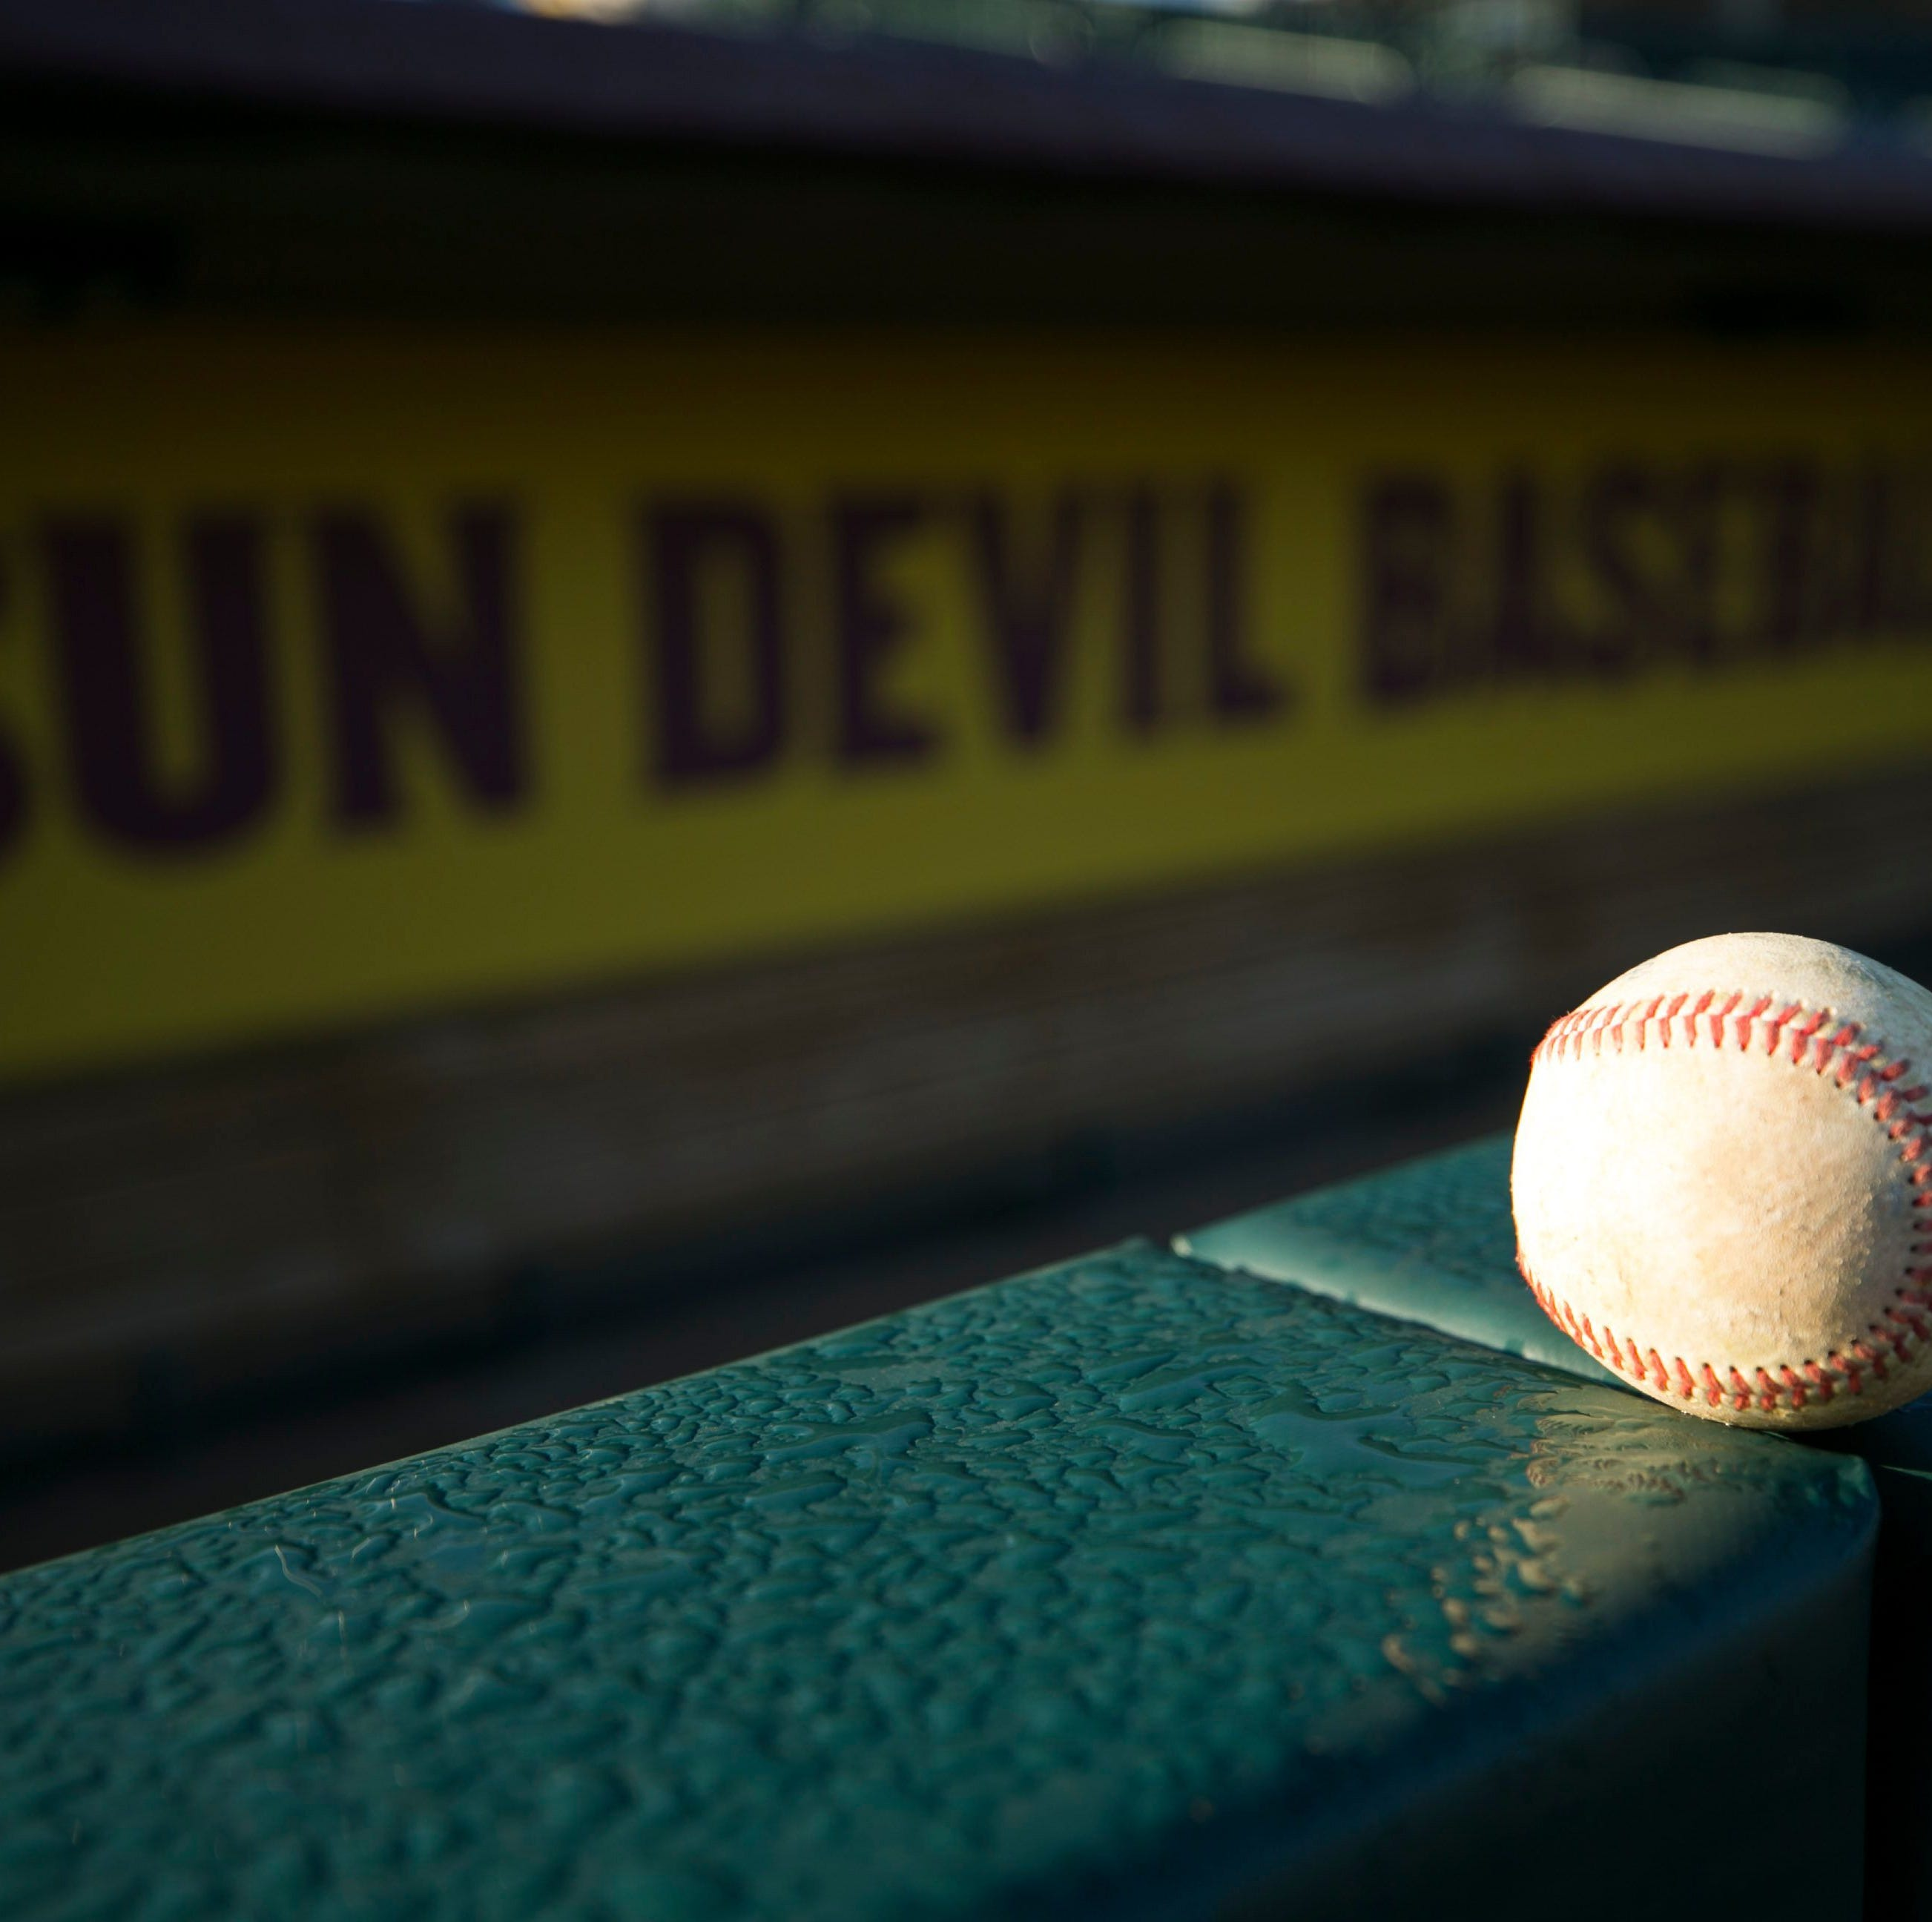 Carter Aldrete homers twice, ASU baseball scores 20 in another rout of Notre Dame